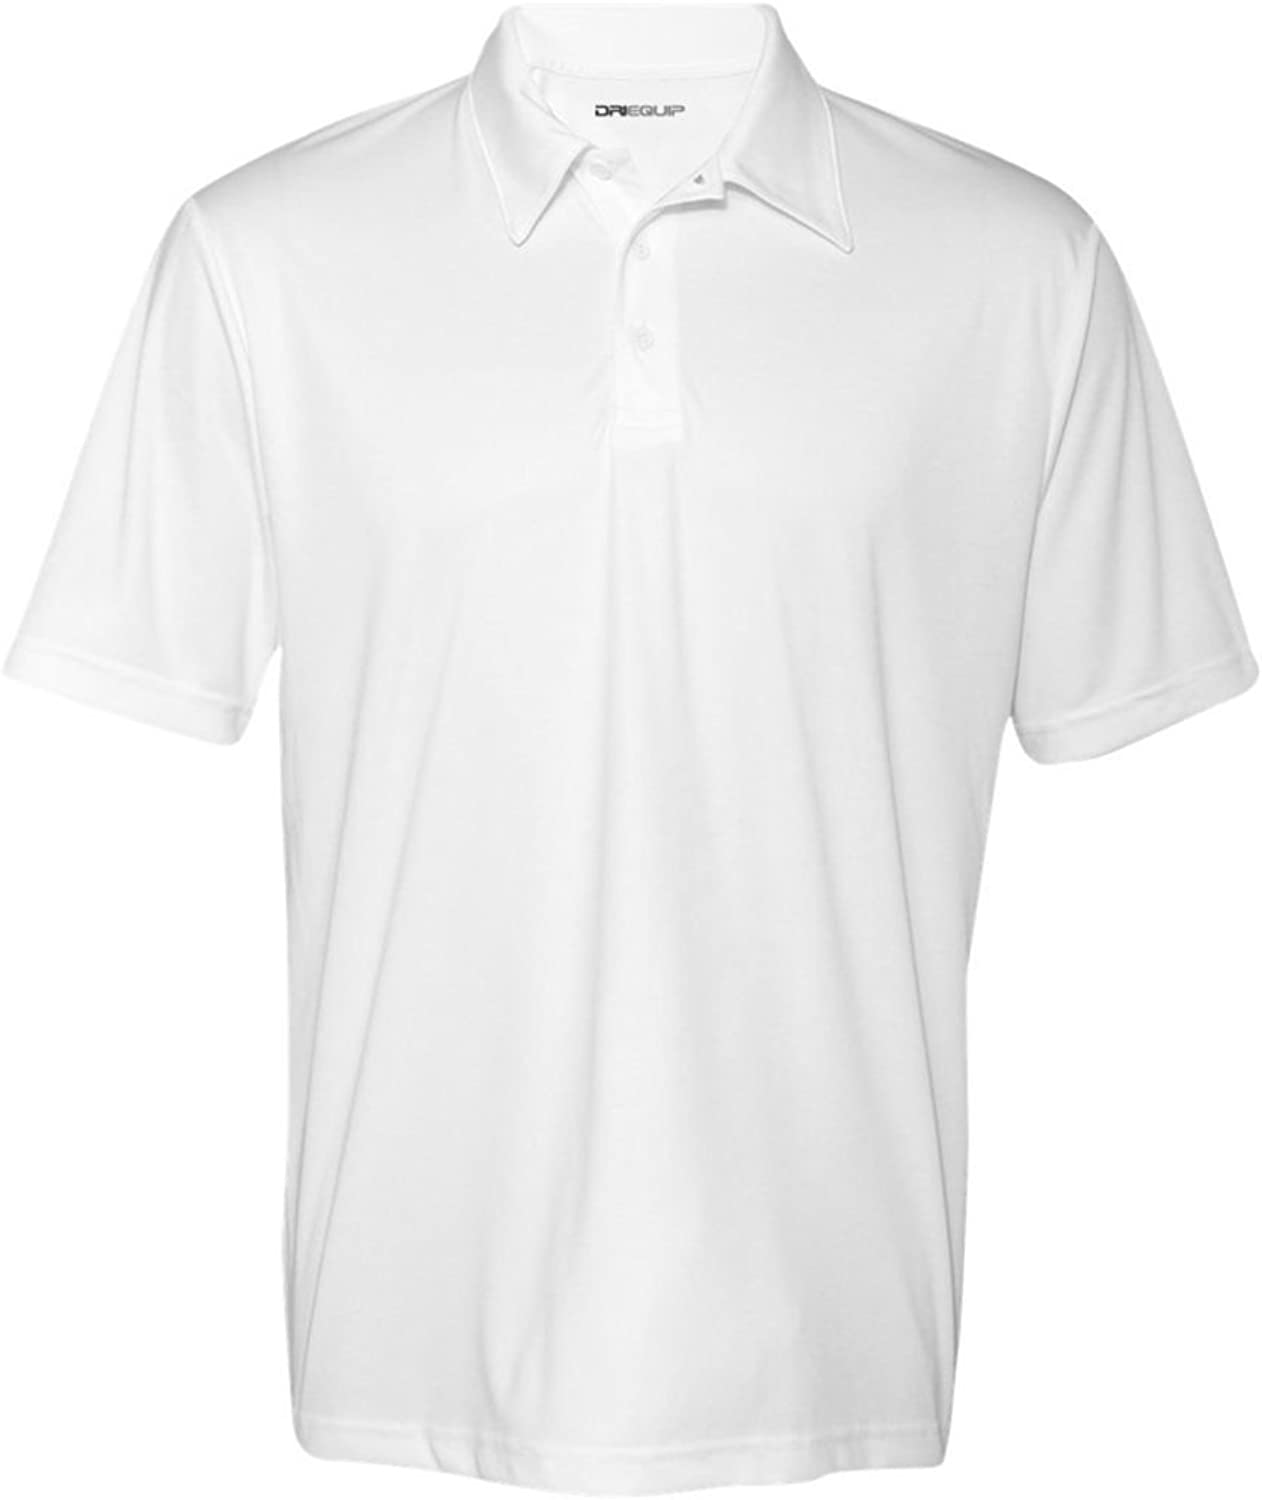 DRI-EQUIP Dry-Wicking Performance Mesh Polos in 12 colors. Mens XS-3XL